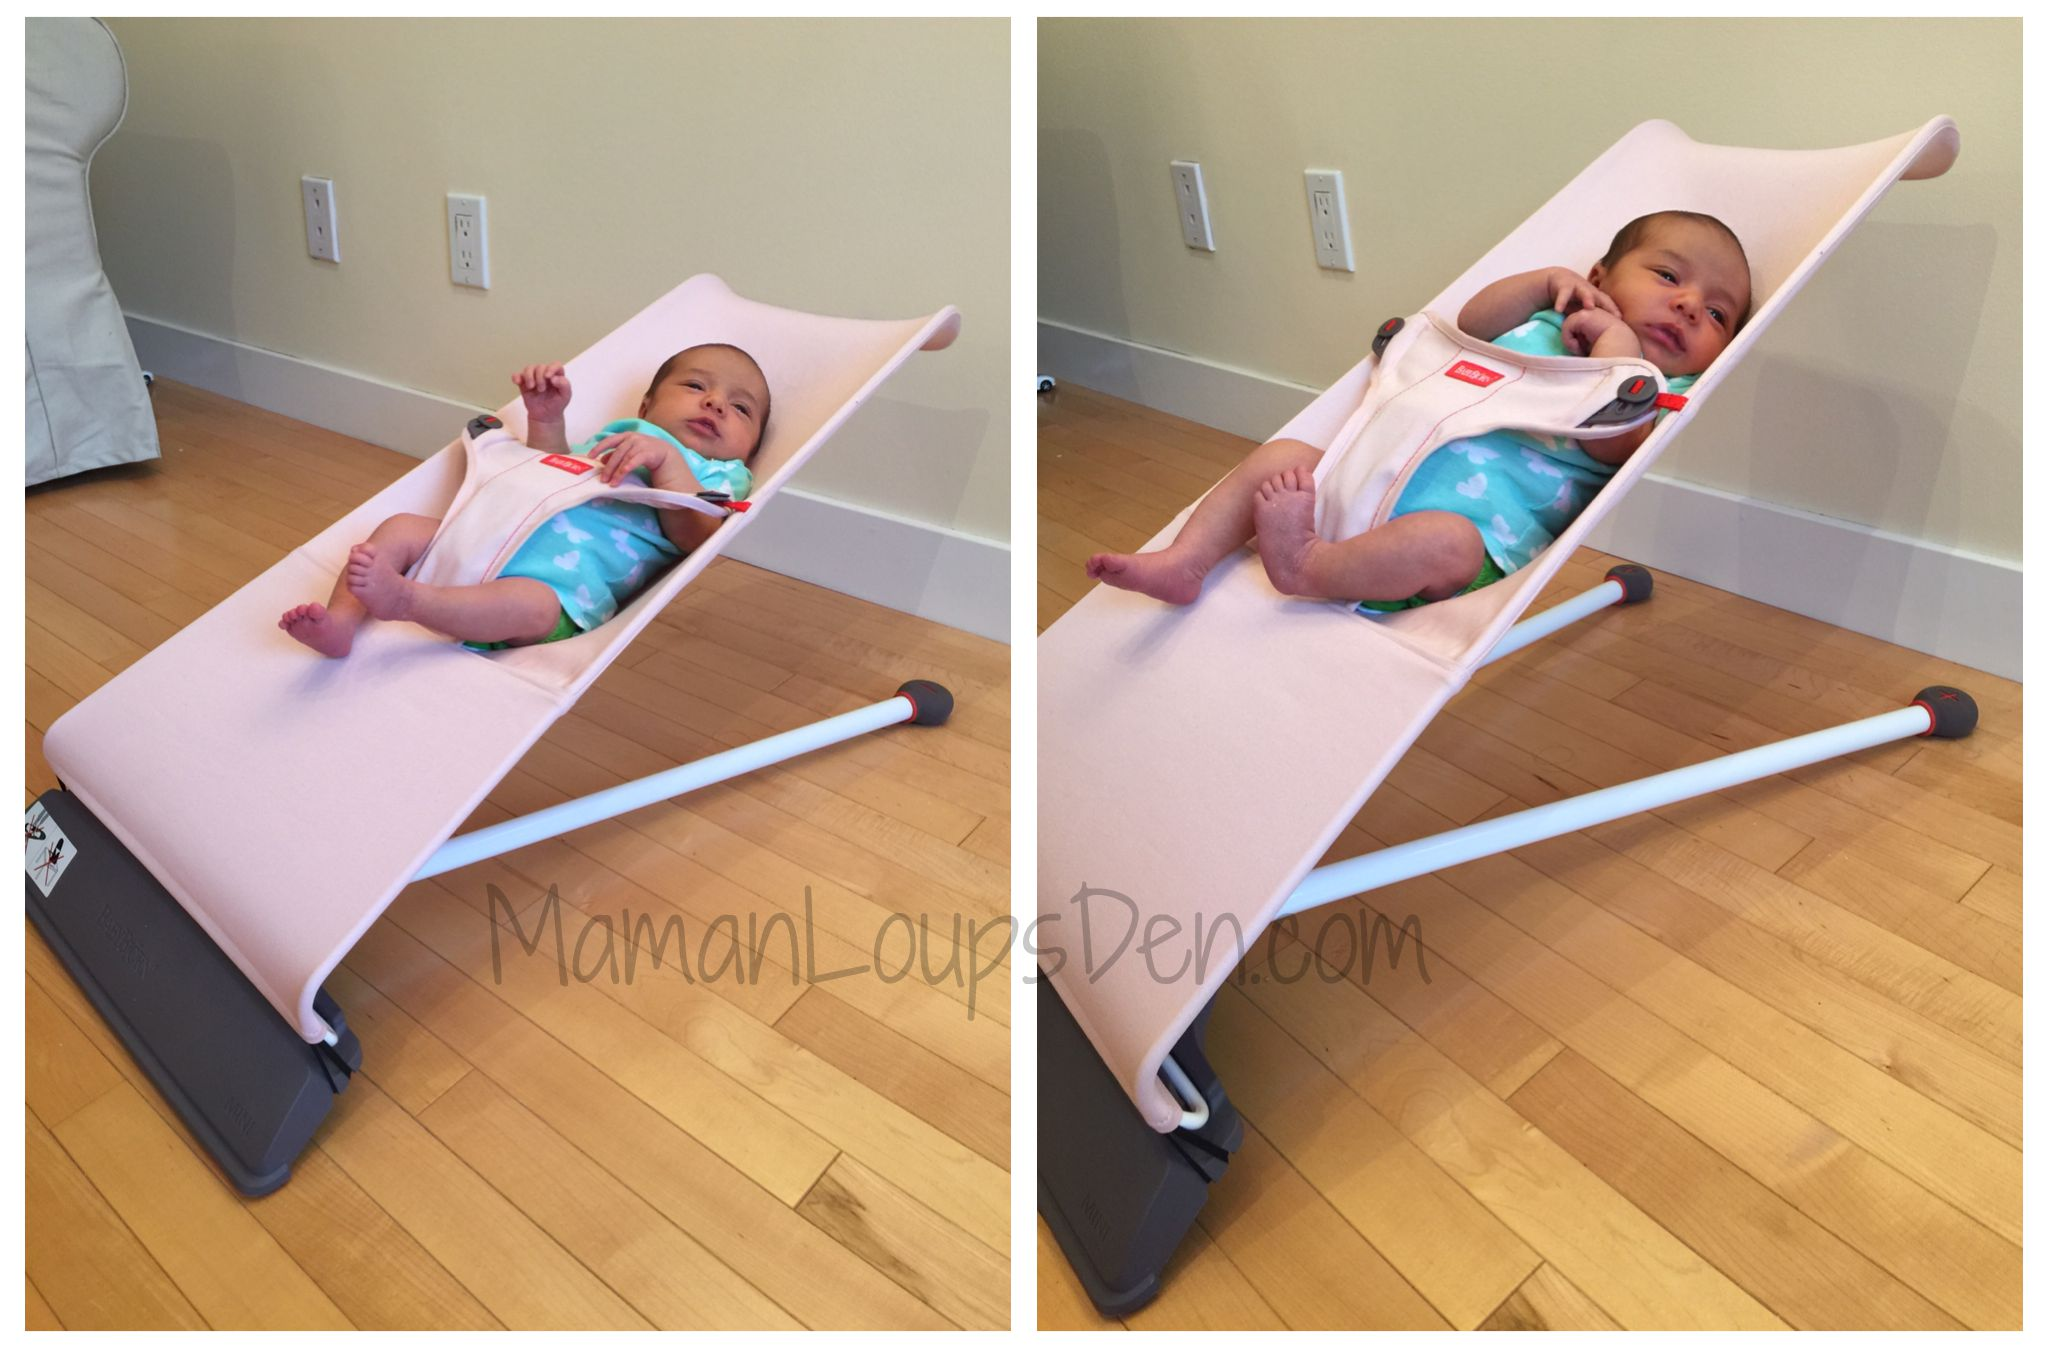 BabyBjorn Bouncer Mini Recline and Upright